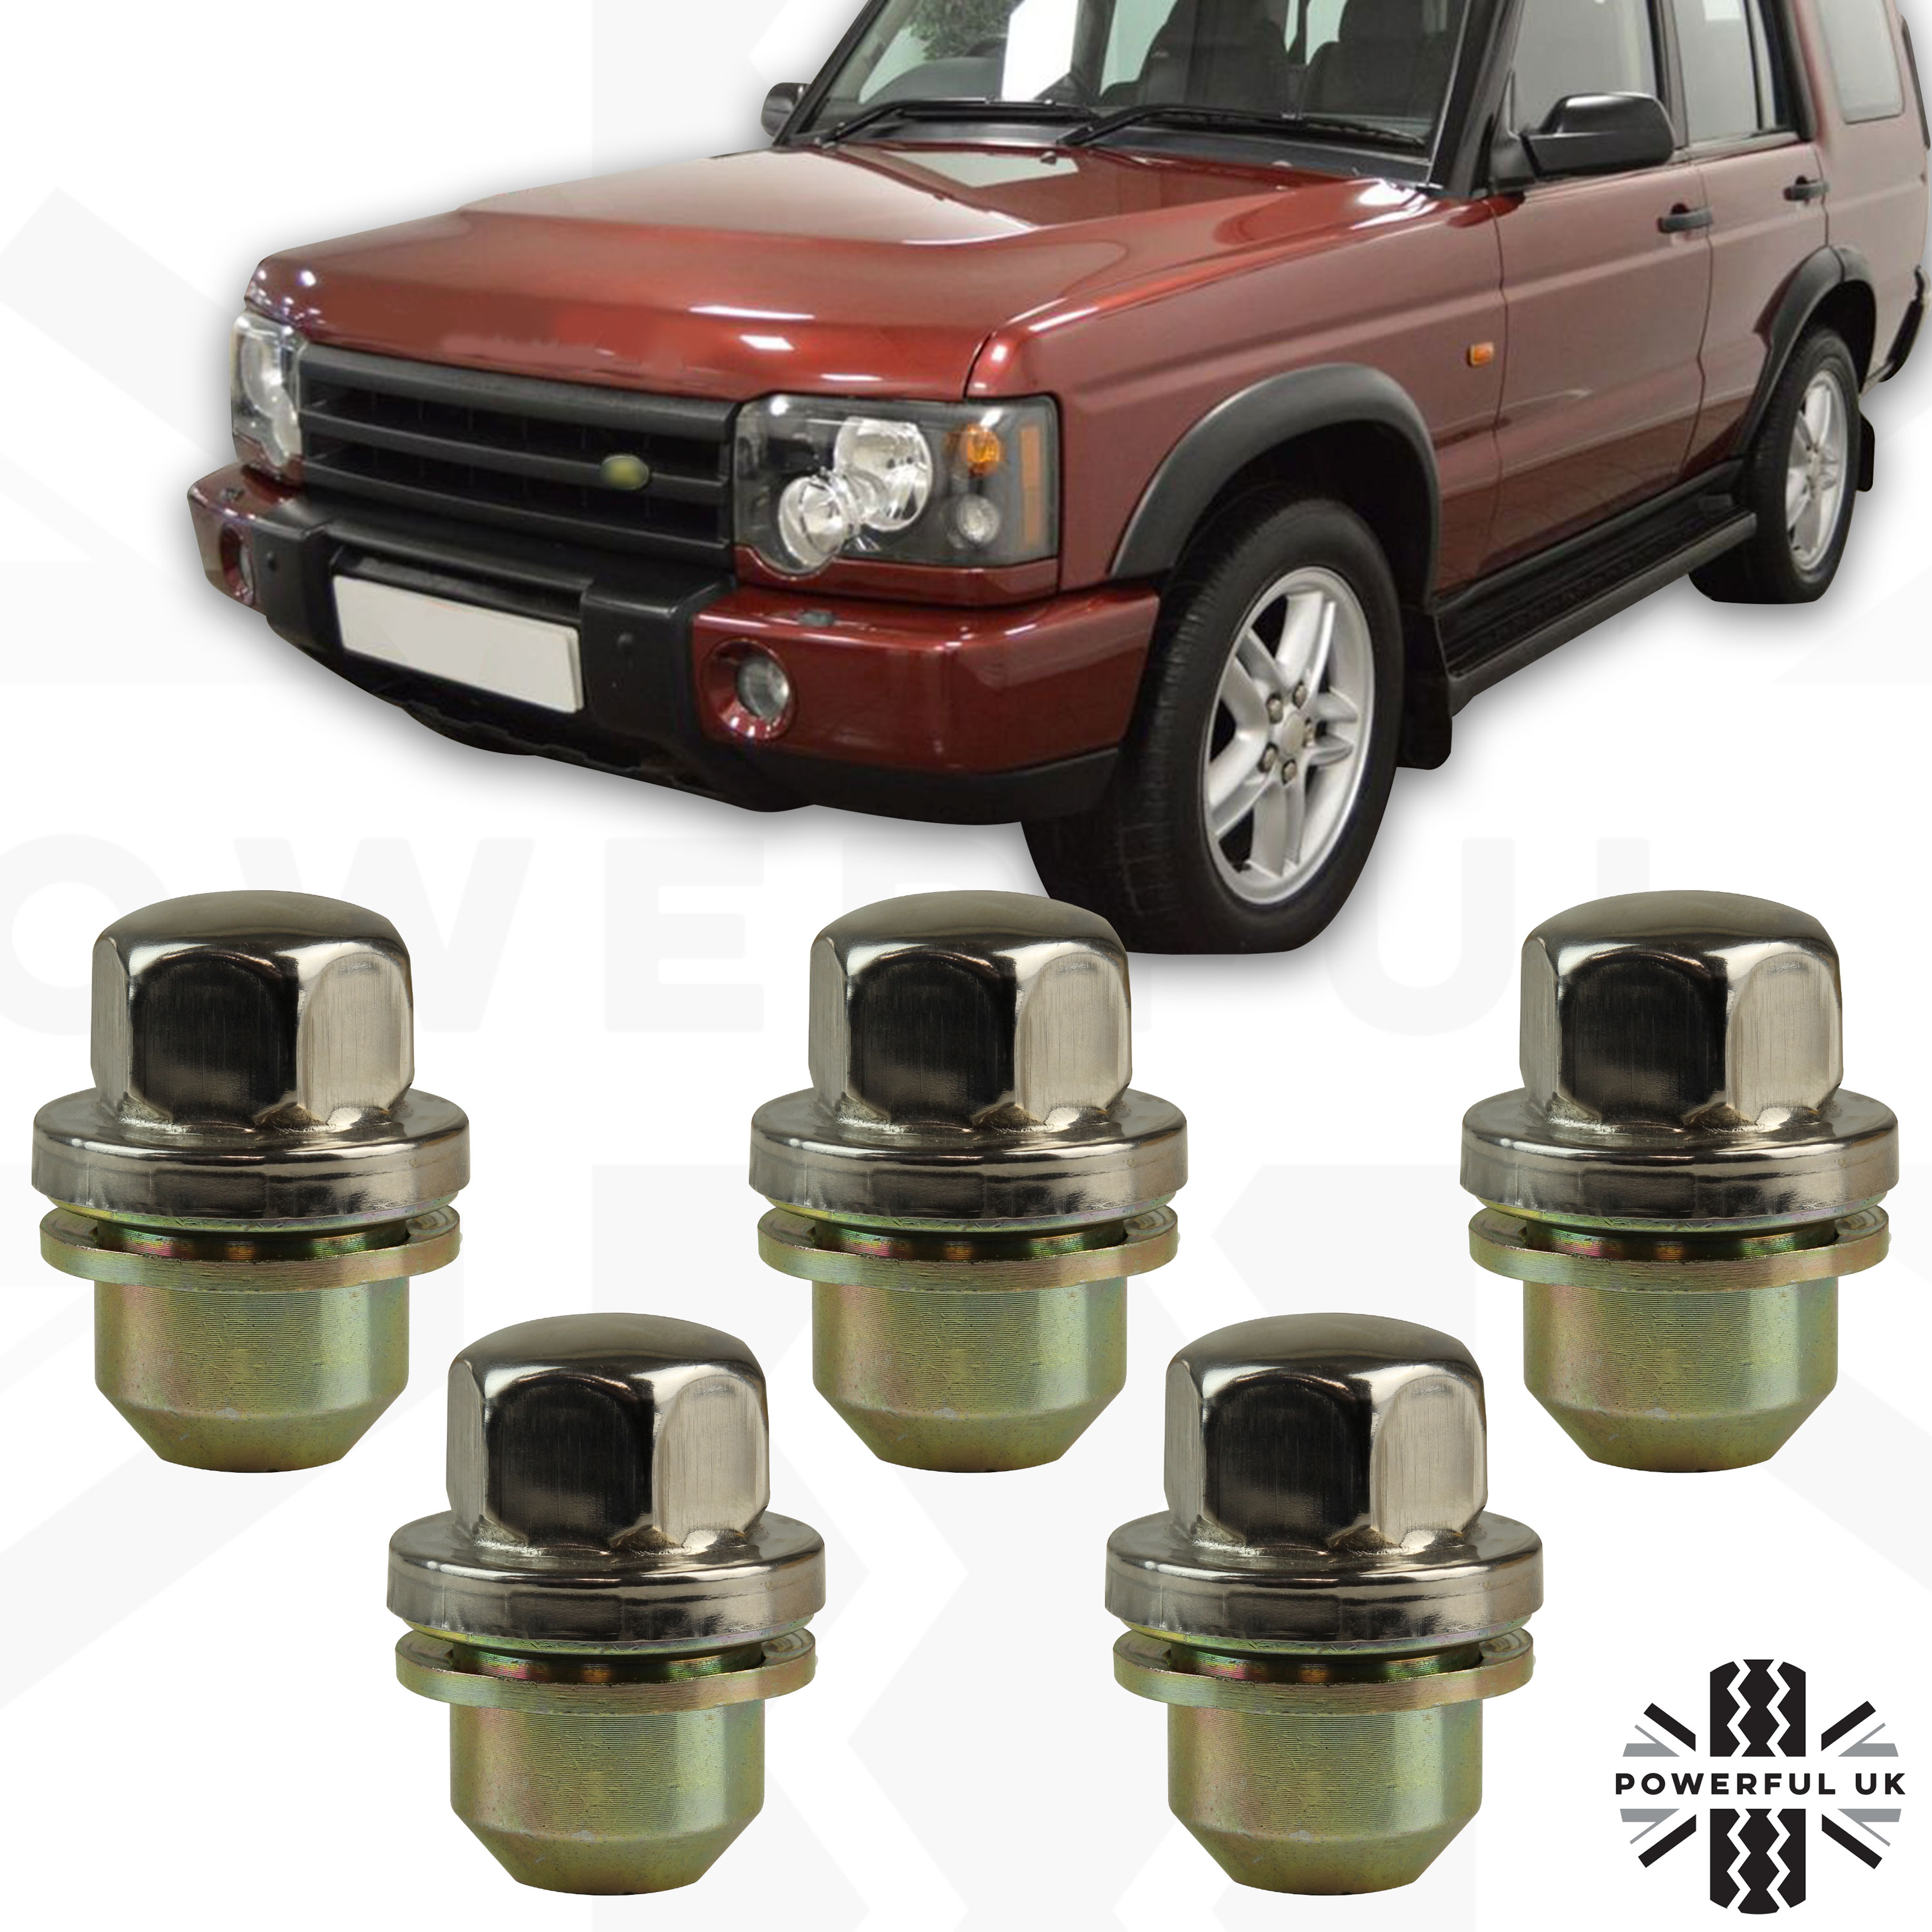 Mk2 98-04 14x1.5 Bolts for Land Rover Discovery Alloy Wheel Nuts Black 20